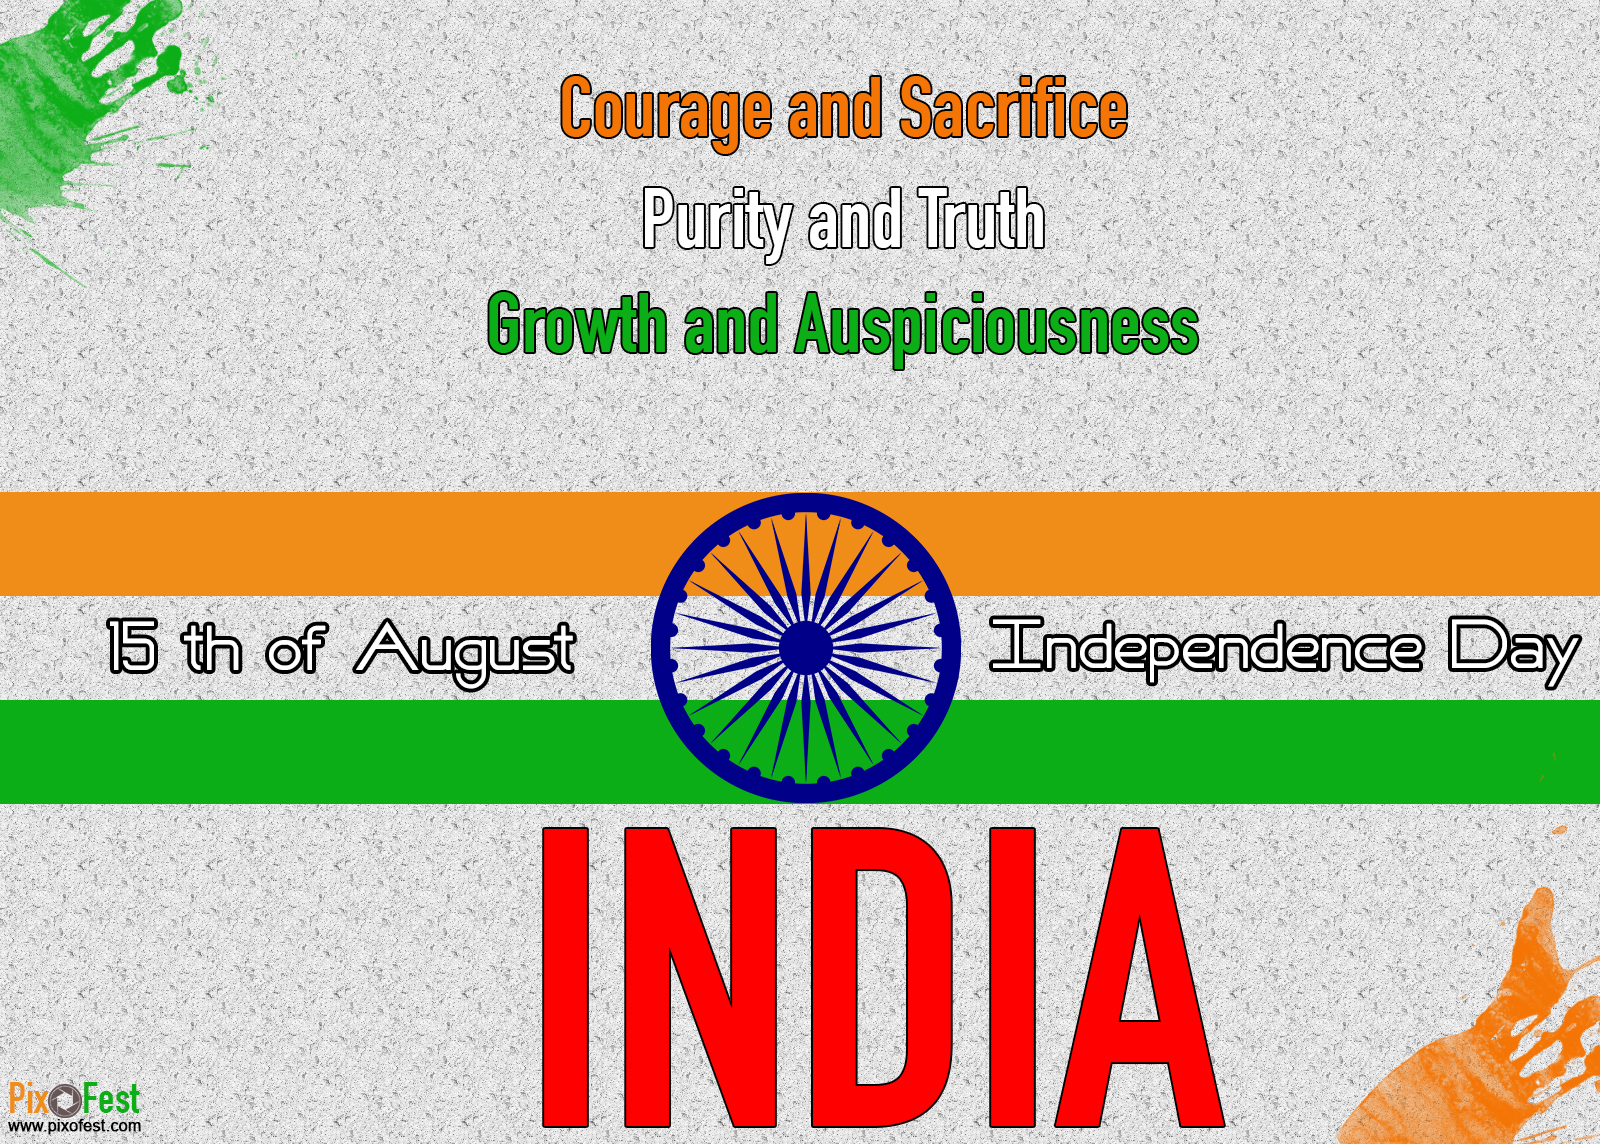 independenceday,15thaugust,independencedayindia,celebration,independence,constitution,government,country,culture,day,freedom,india,indian,republic,national,flag,nationalflag,festival,chakra,ashokchakra,26thjanuary,ashok,pixofest,bandemataram